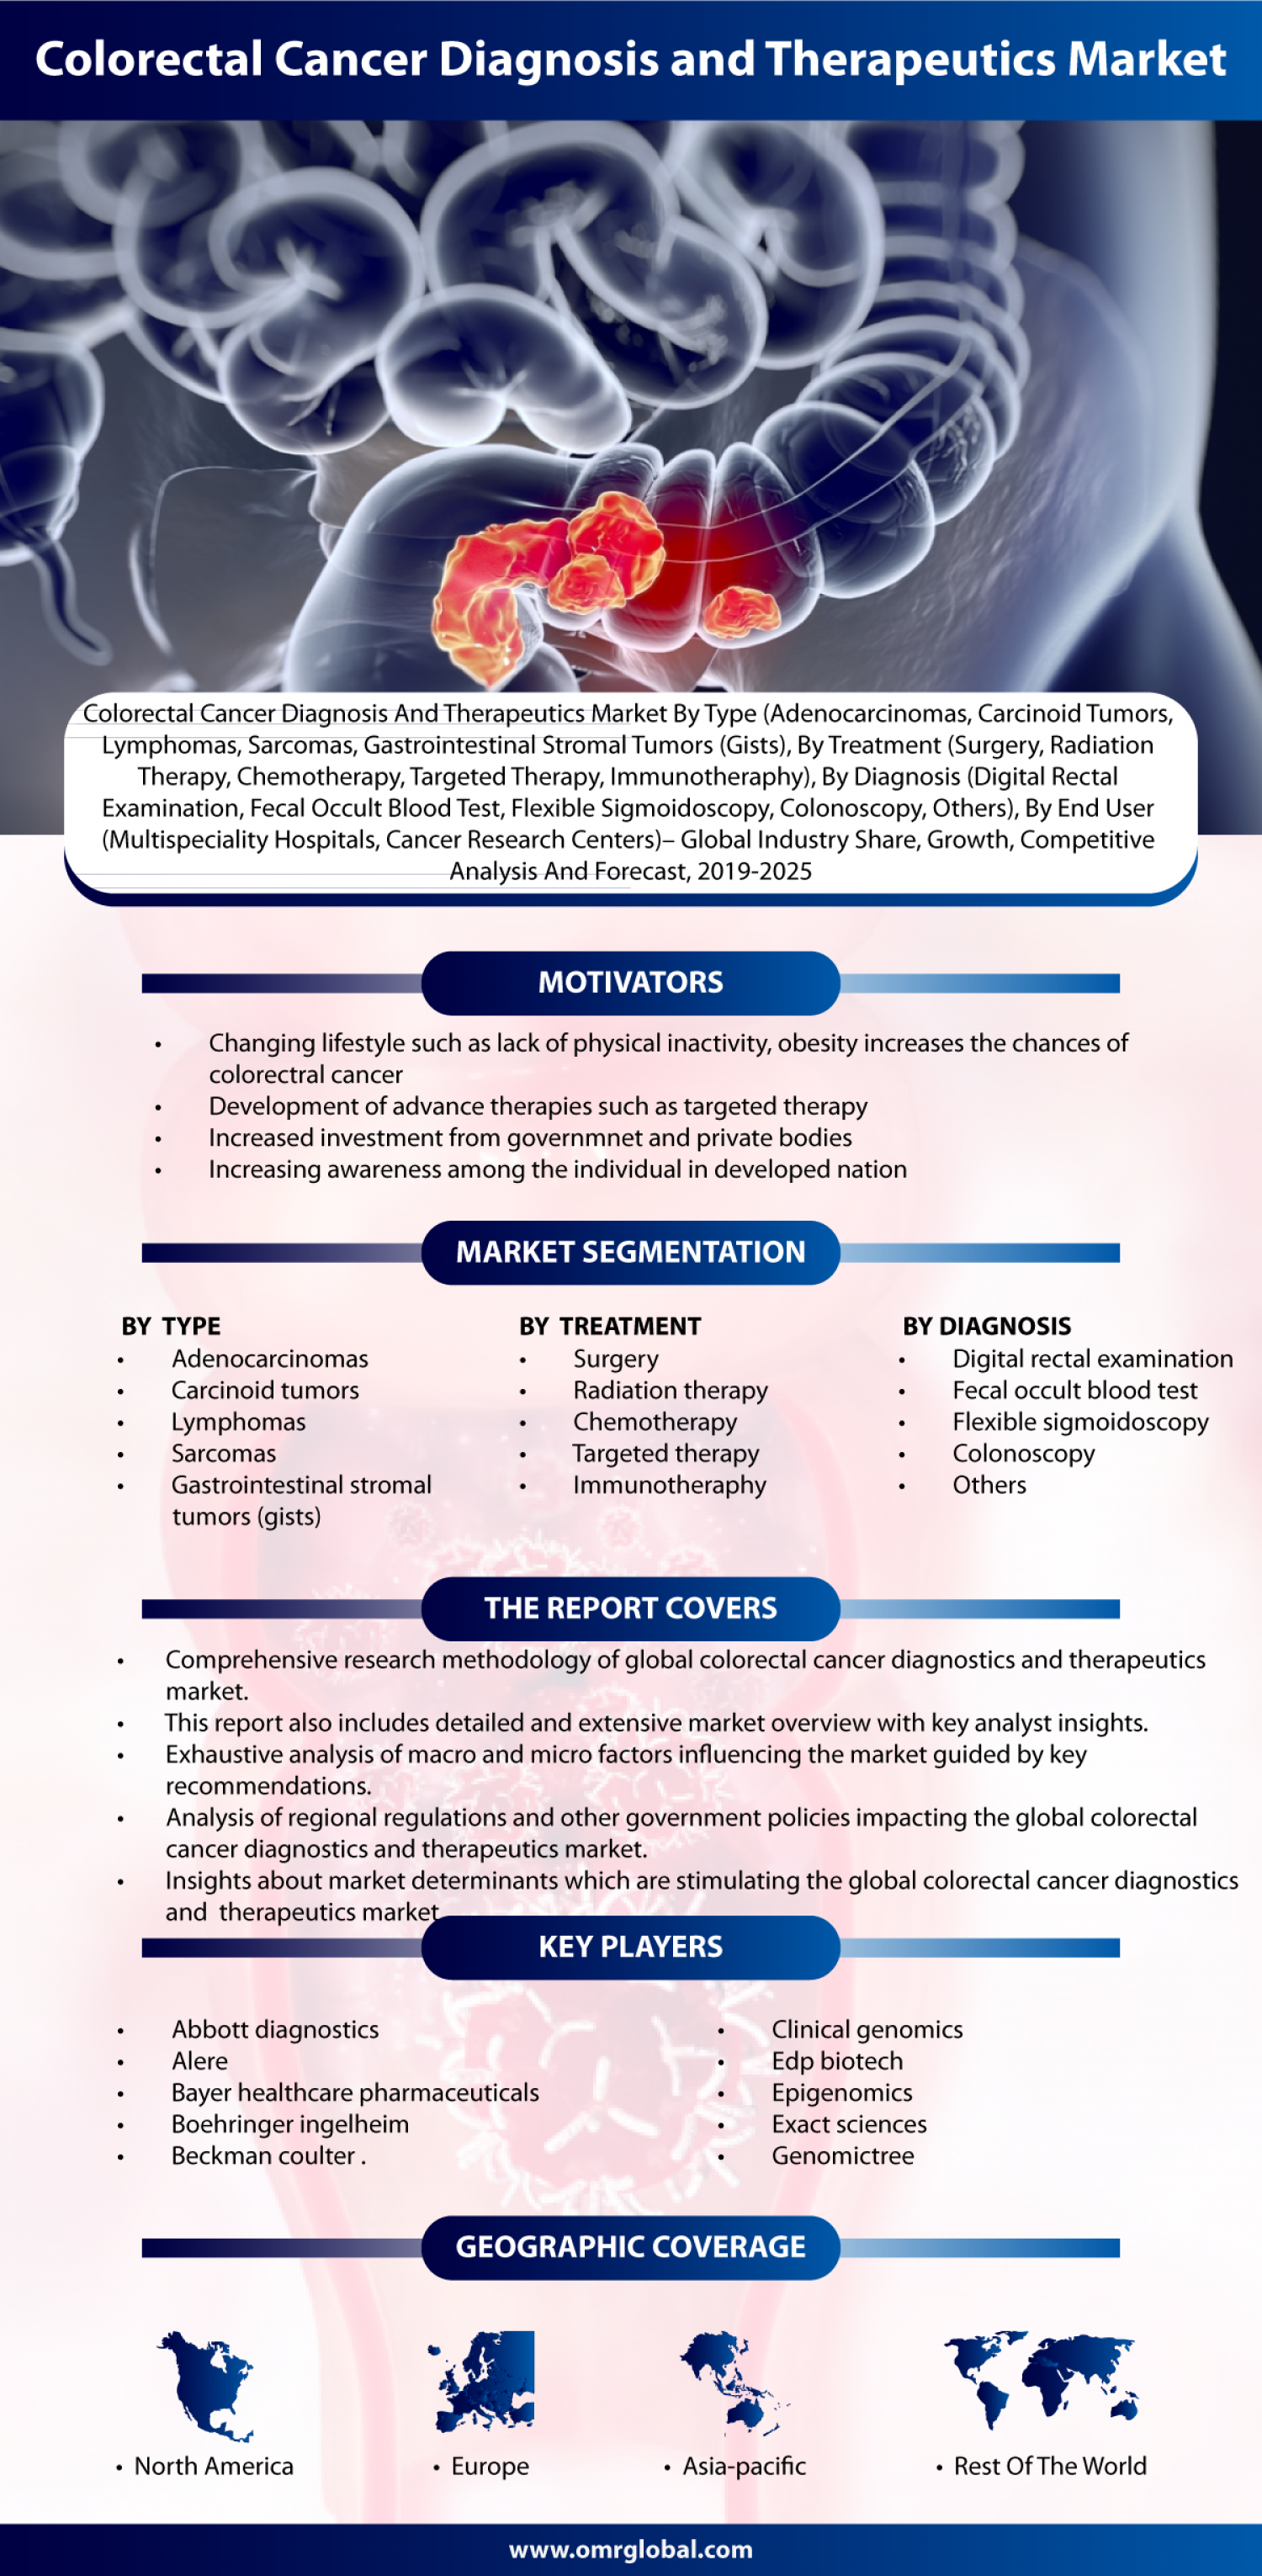 Colorectal Cancer Diagnostics and Therapeutics Market: Global Market Size and Forecast 2018-2023 Infographic